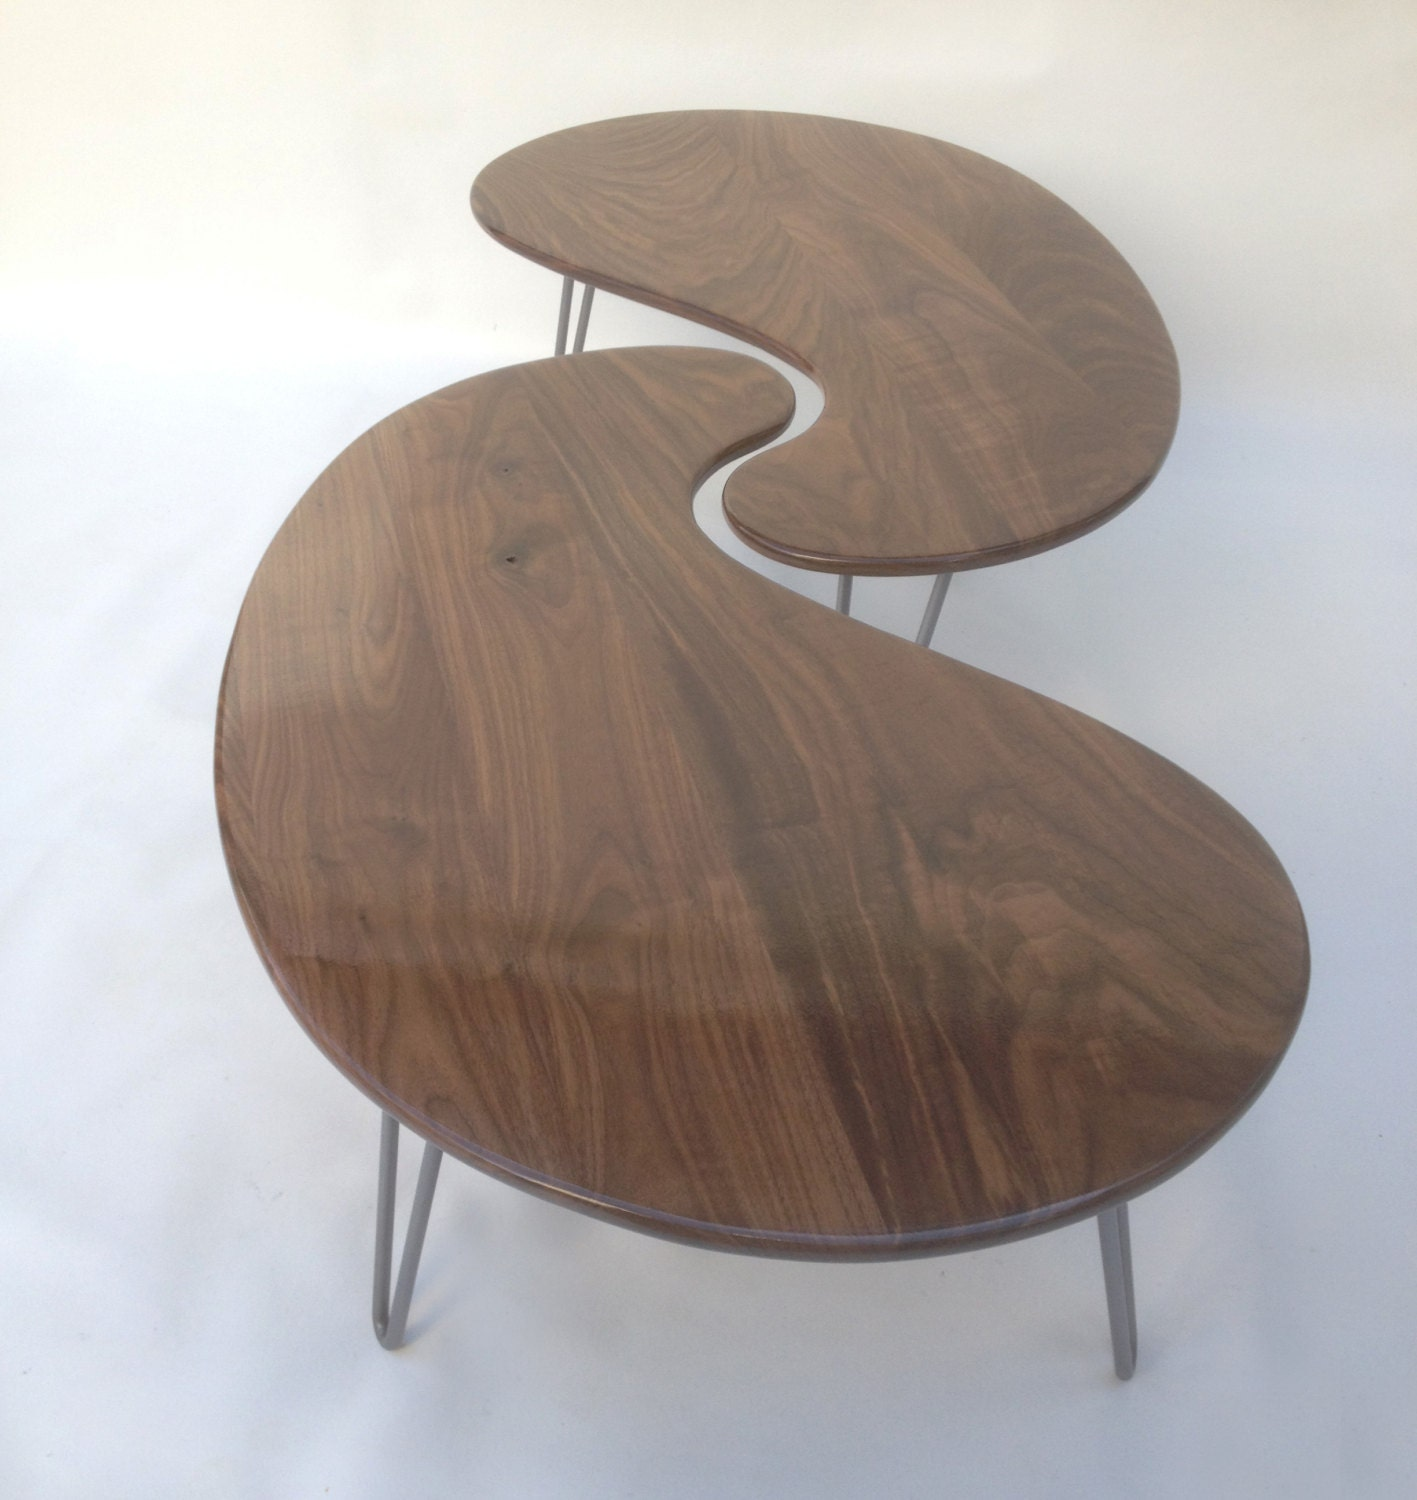 Nesting Kidney Bean Coffee Tables Mid-Century Modern